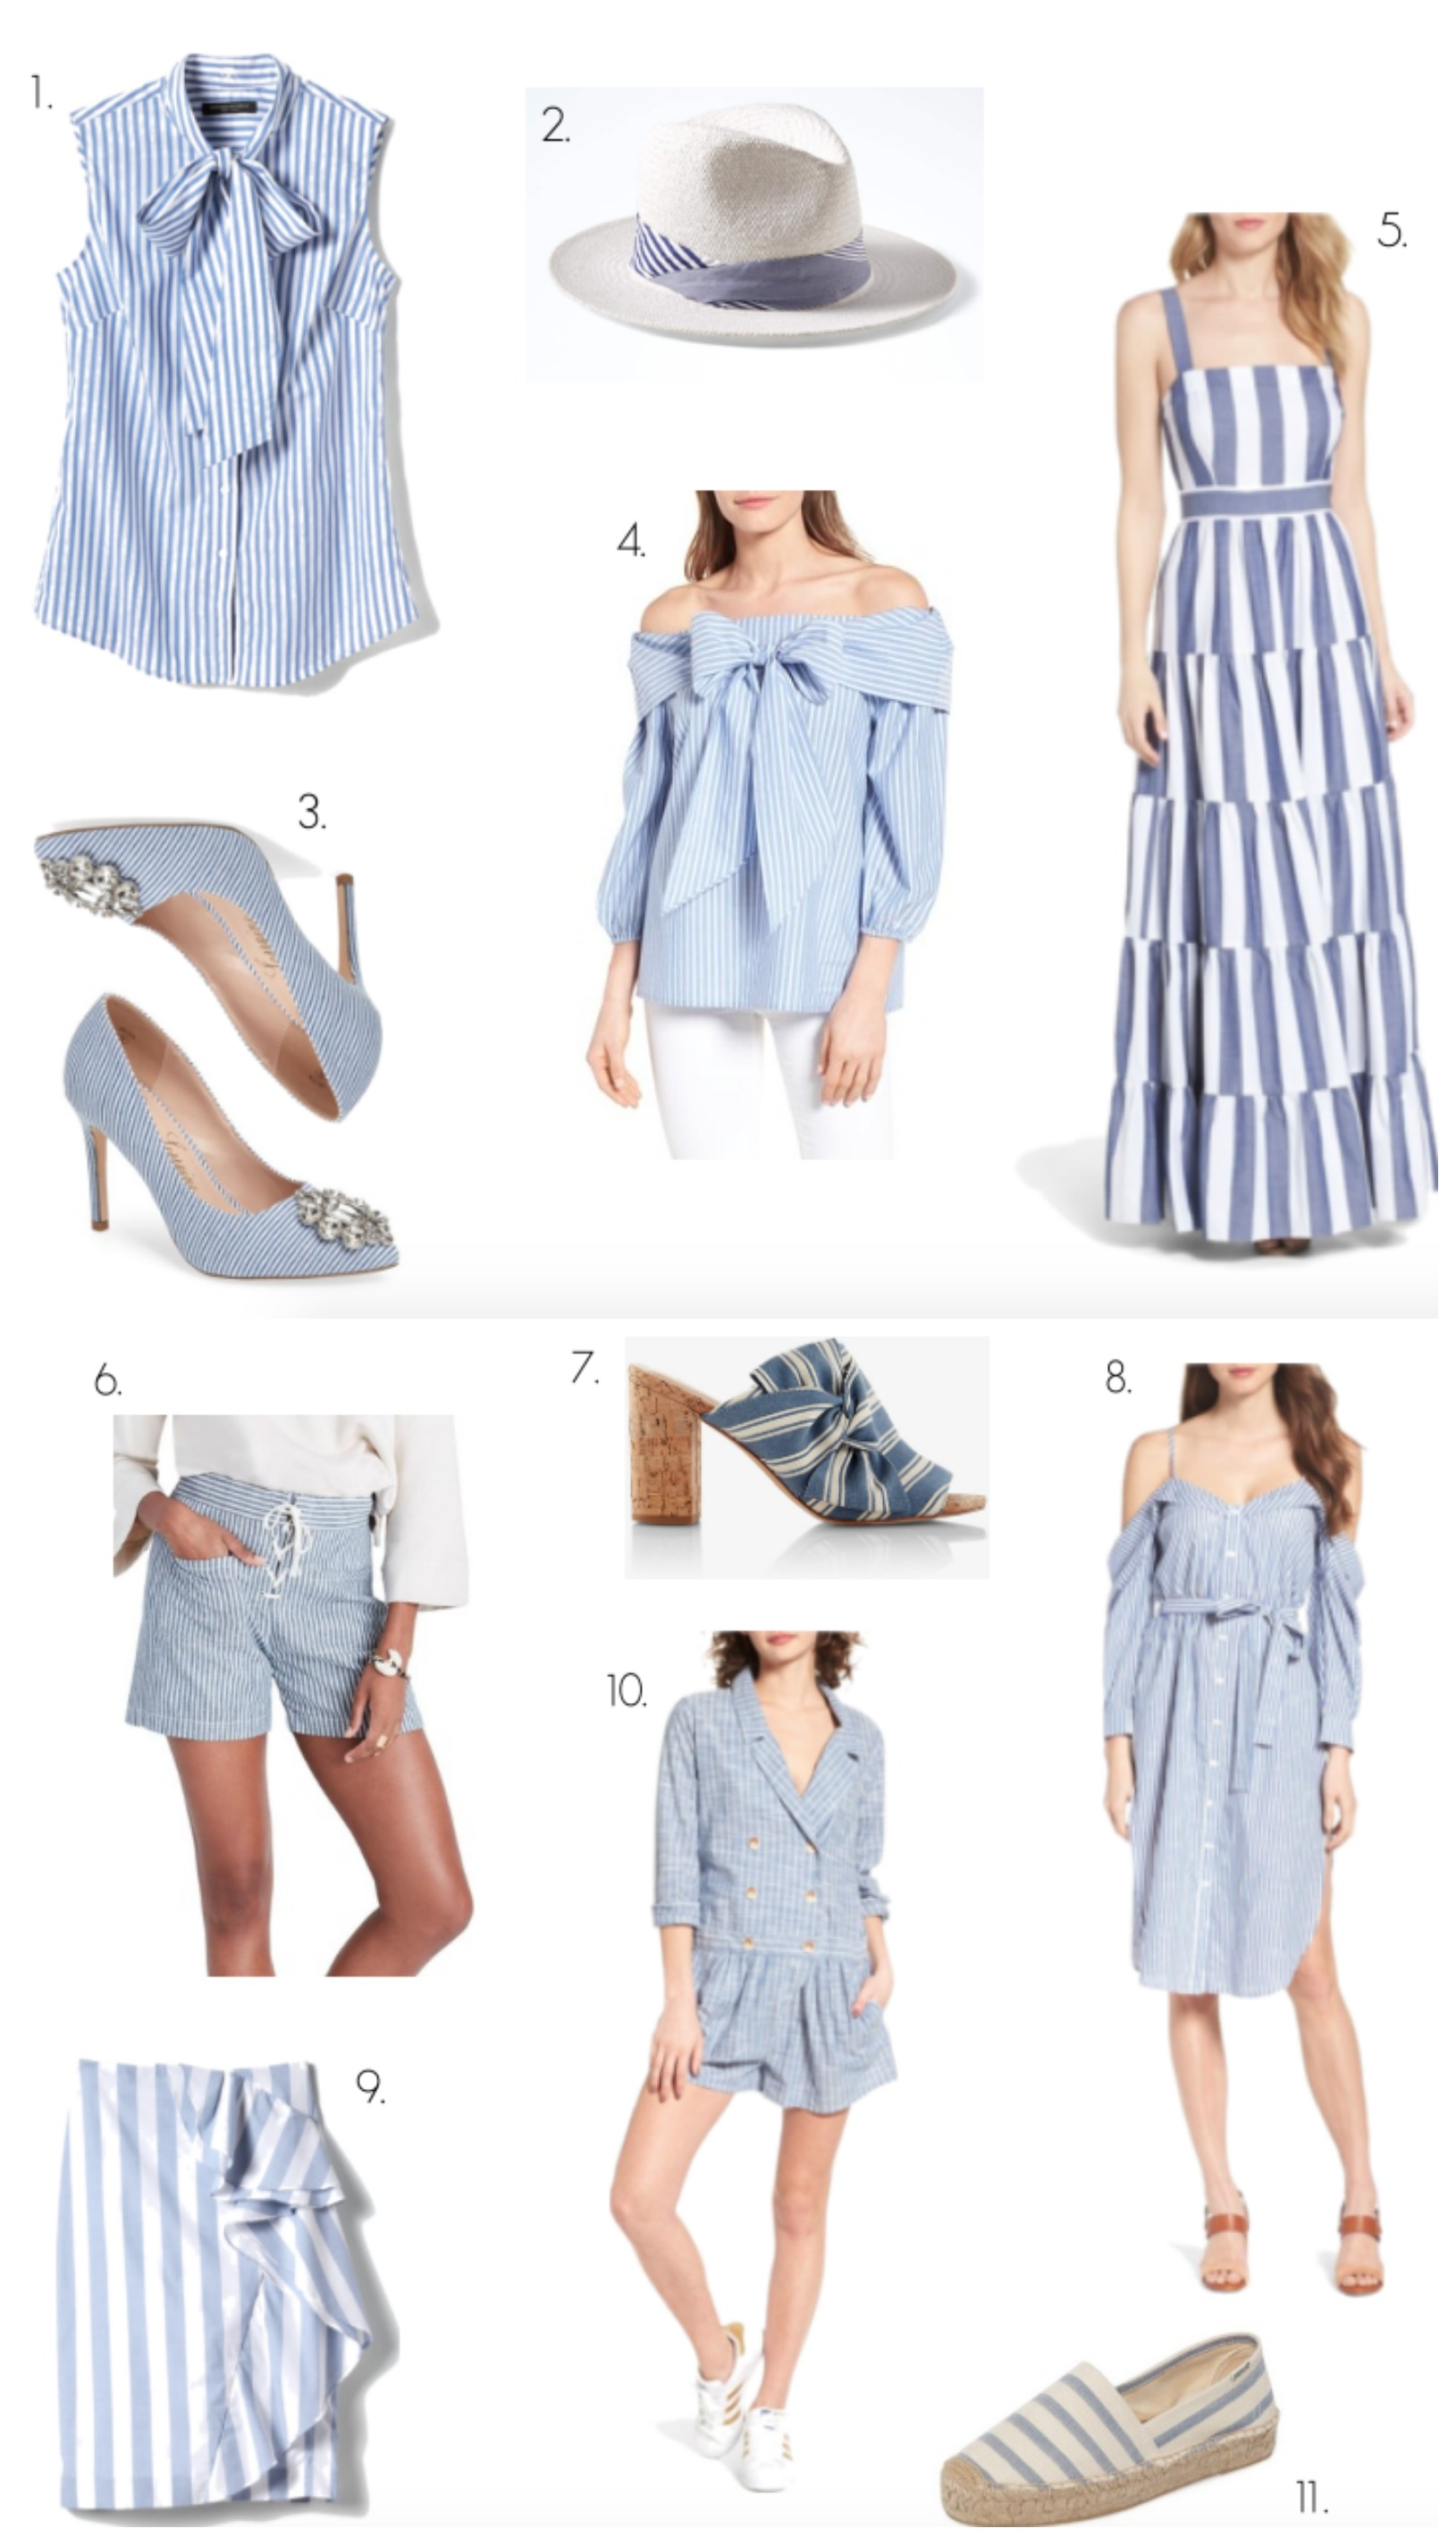 Nautical trend stripes forecasting dress for on every day in 2019